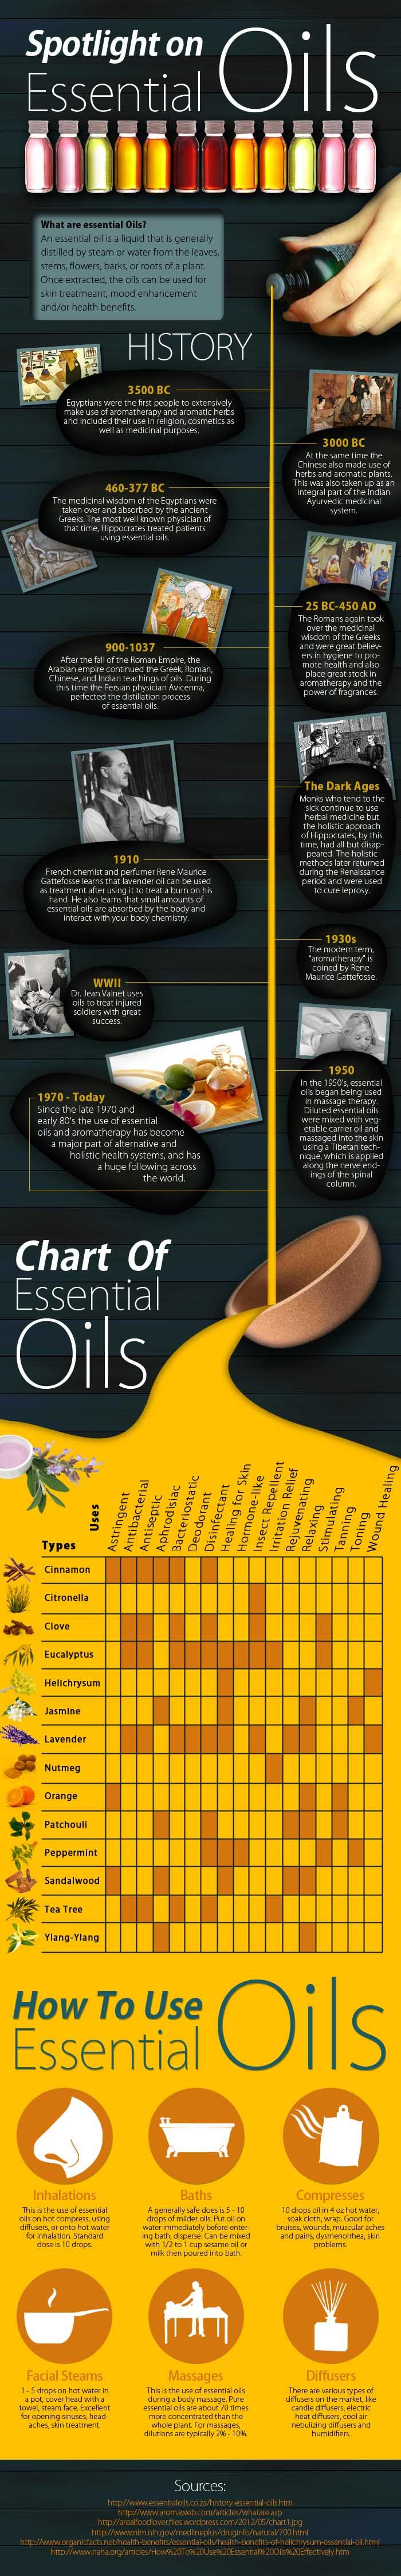 Essential Oils: Everything You Need To Know